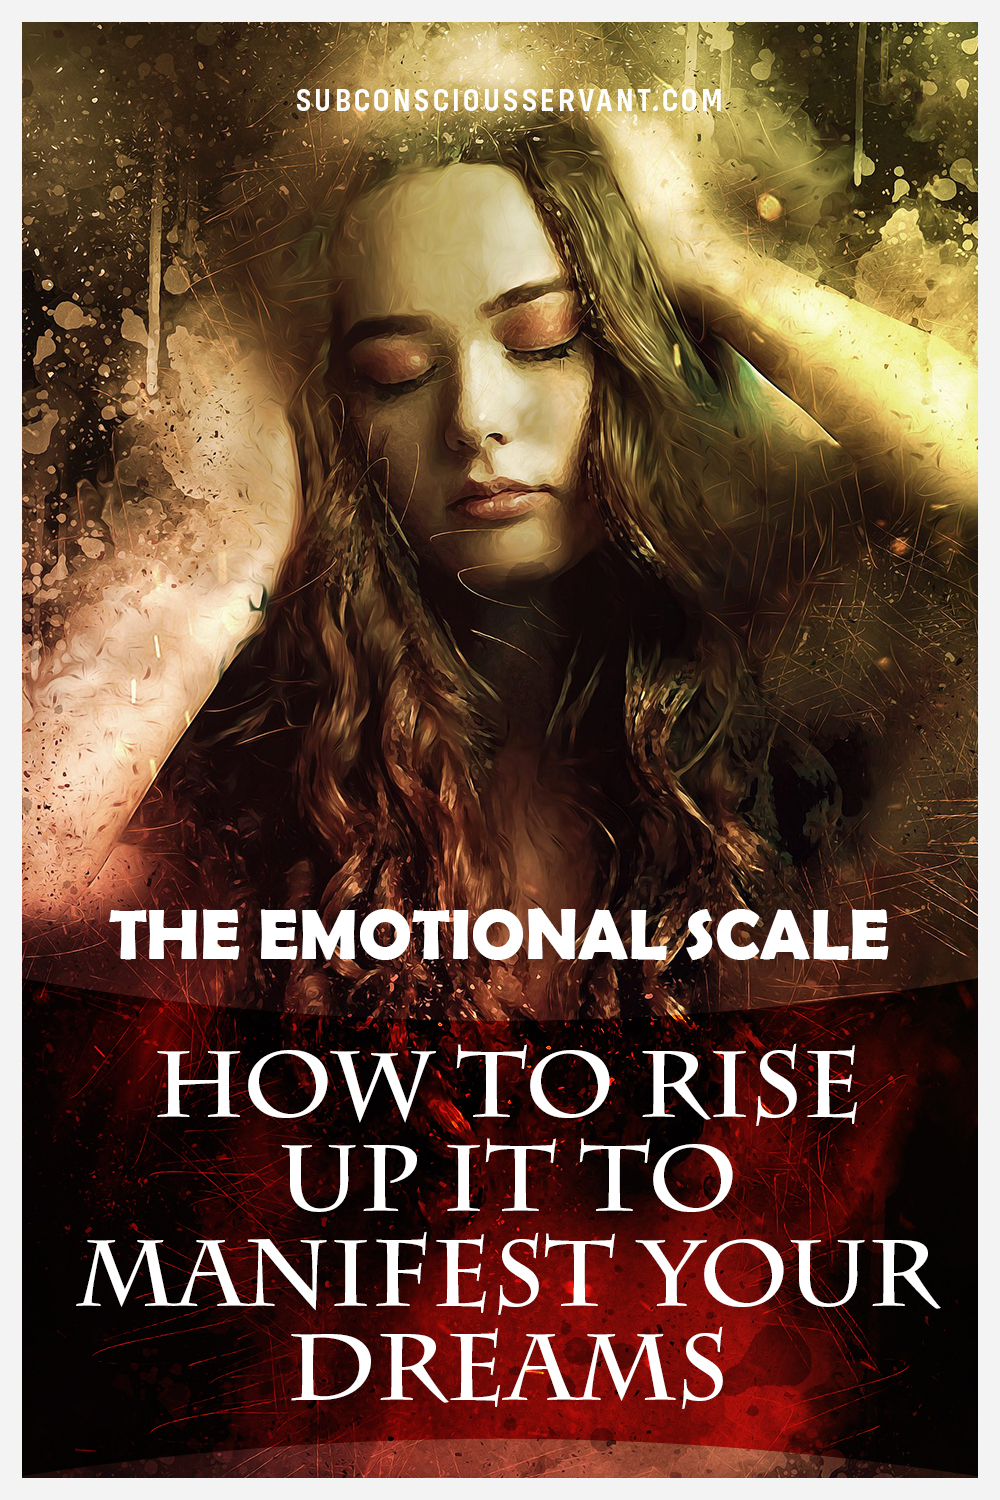 The EMOTIONAL SCALE - What It Is, And How To RISE Up It